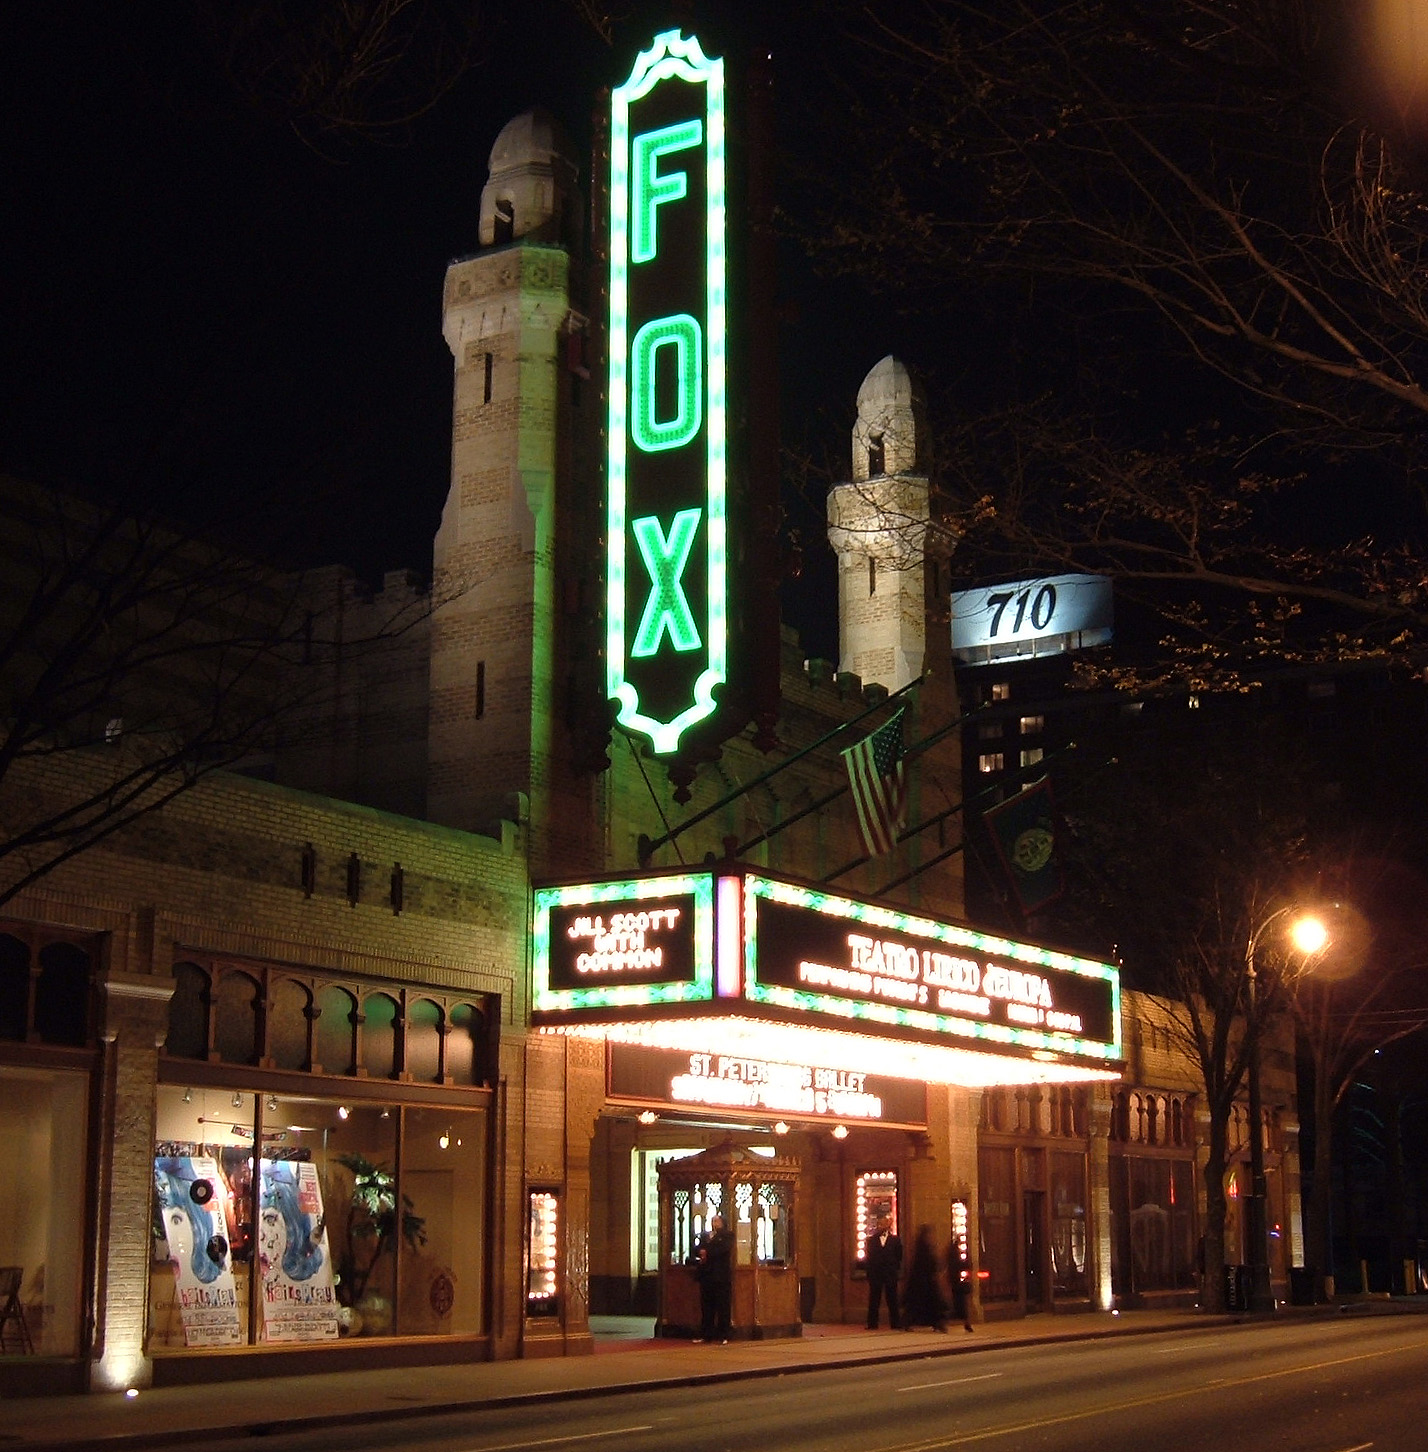 Fox_Theater_night